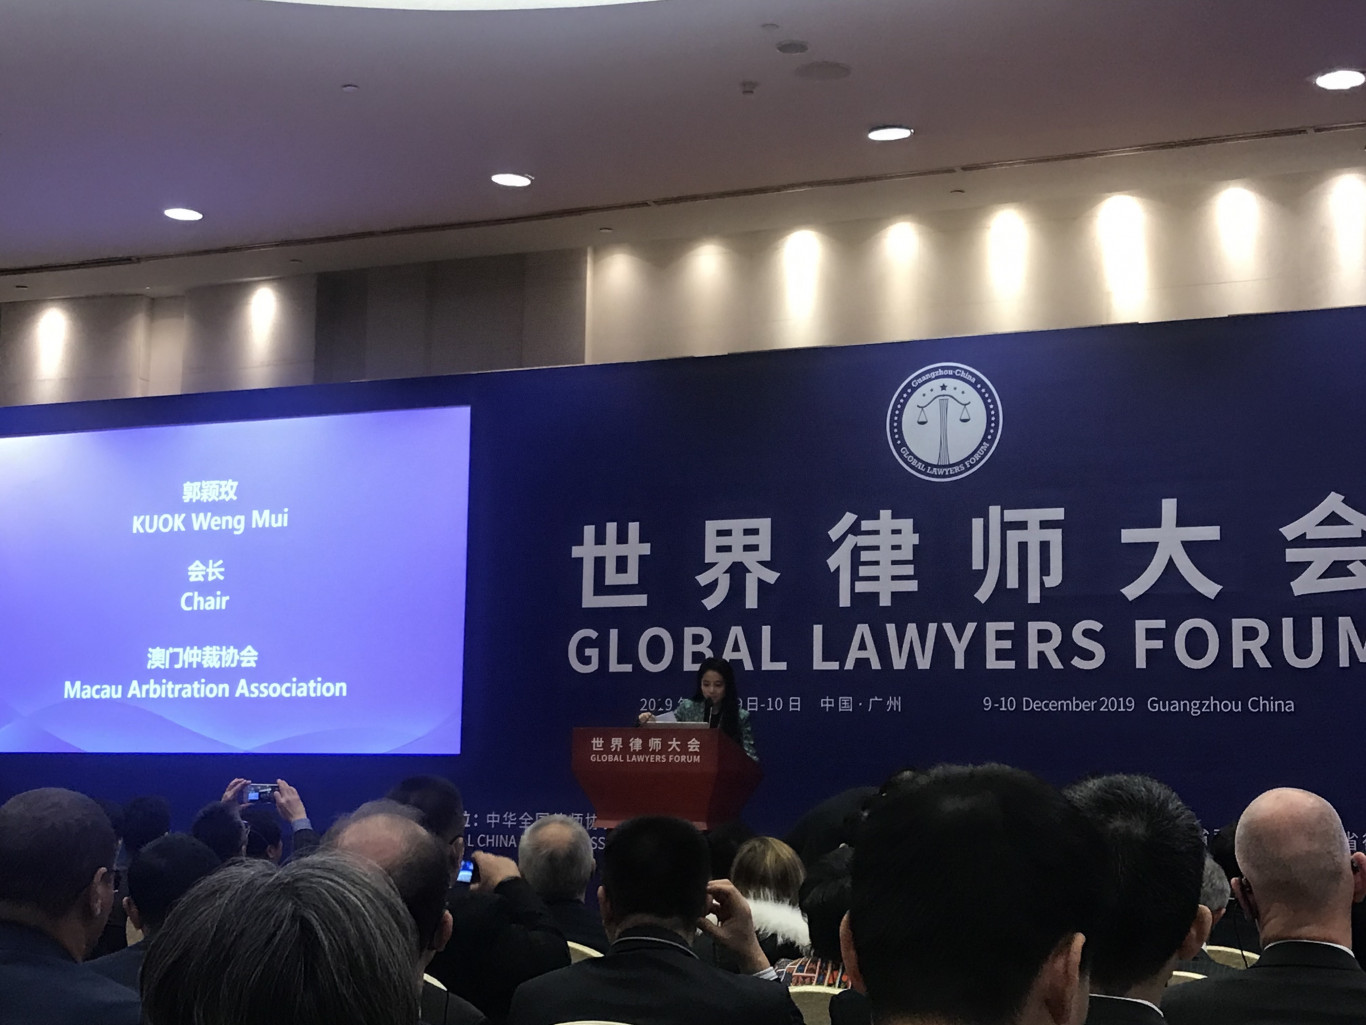 Lawyer Pham from ASL LAW joined the Global Lawyers Forum (GLF) in China. The GLF discussed different topics including M&A in Asia, cross border transaction advice, cooperation between lawyers from different countries.